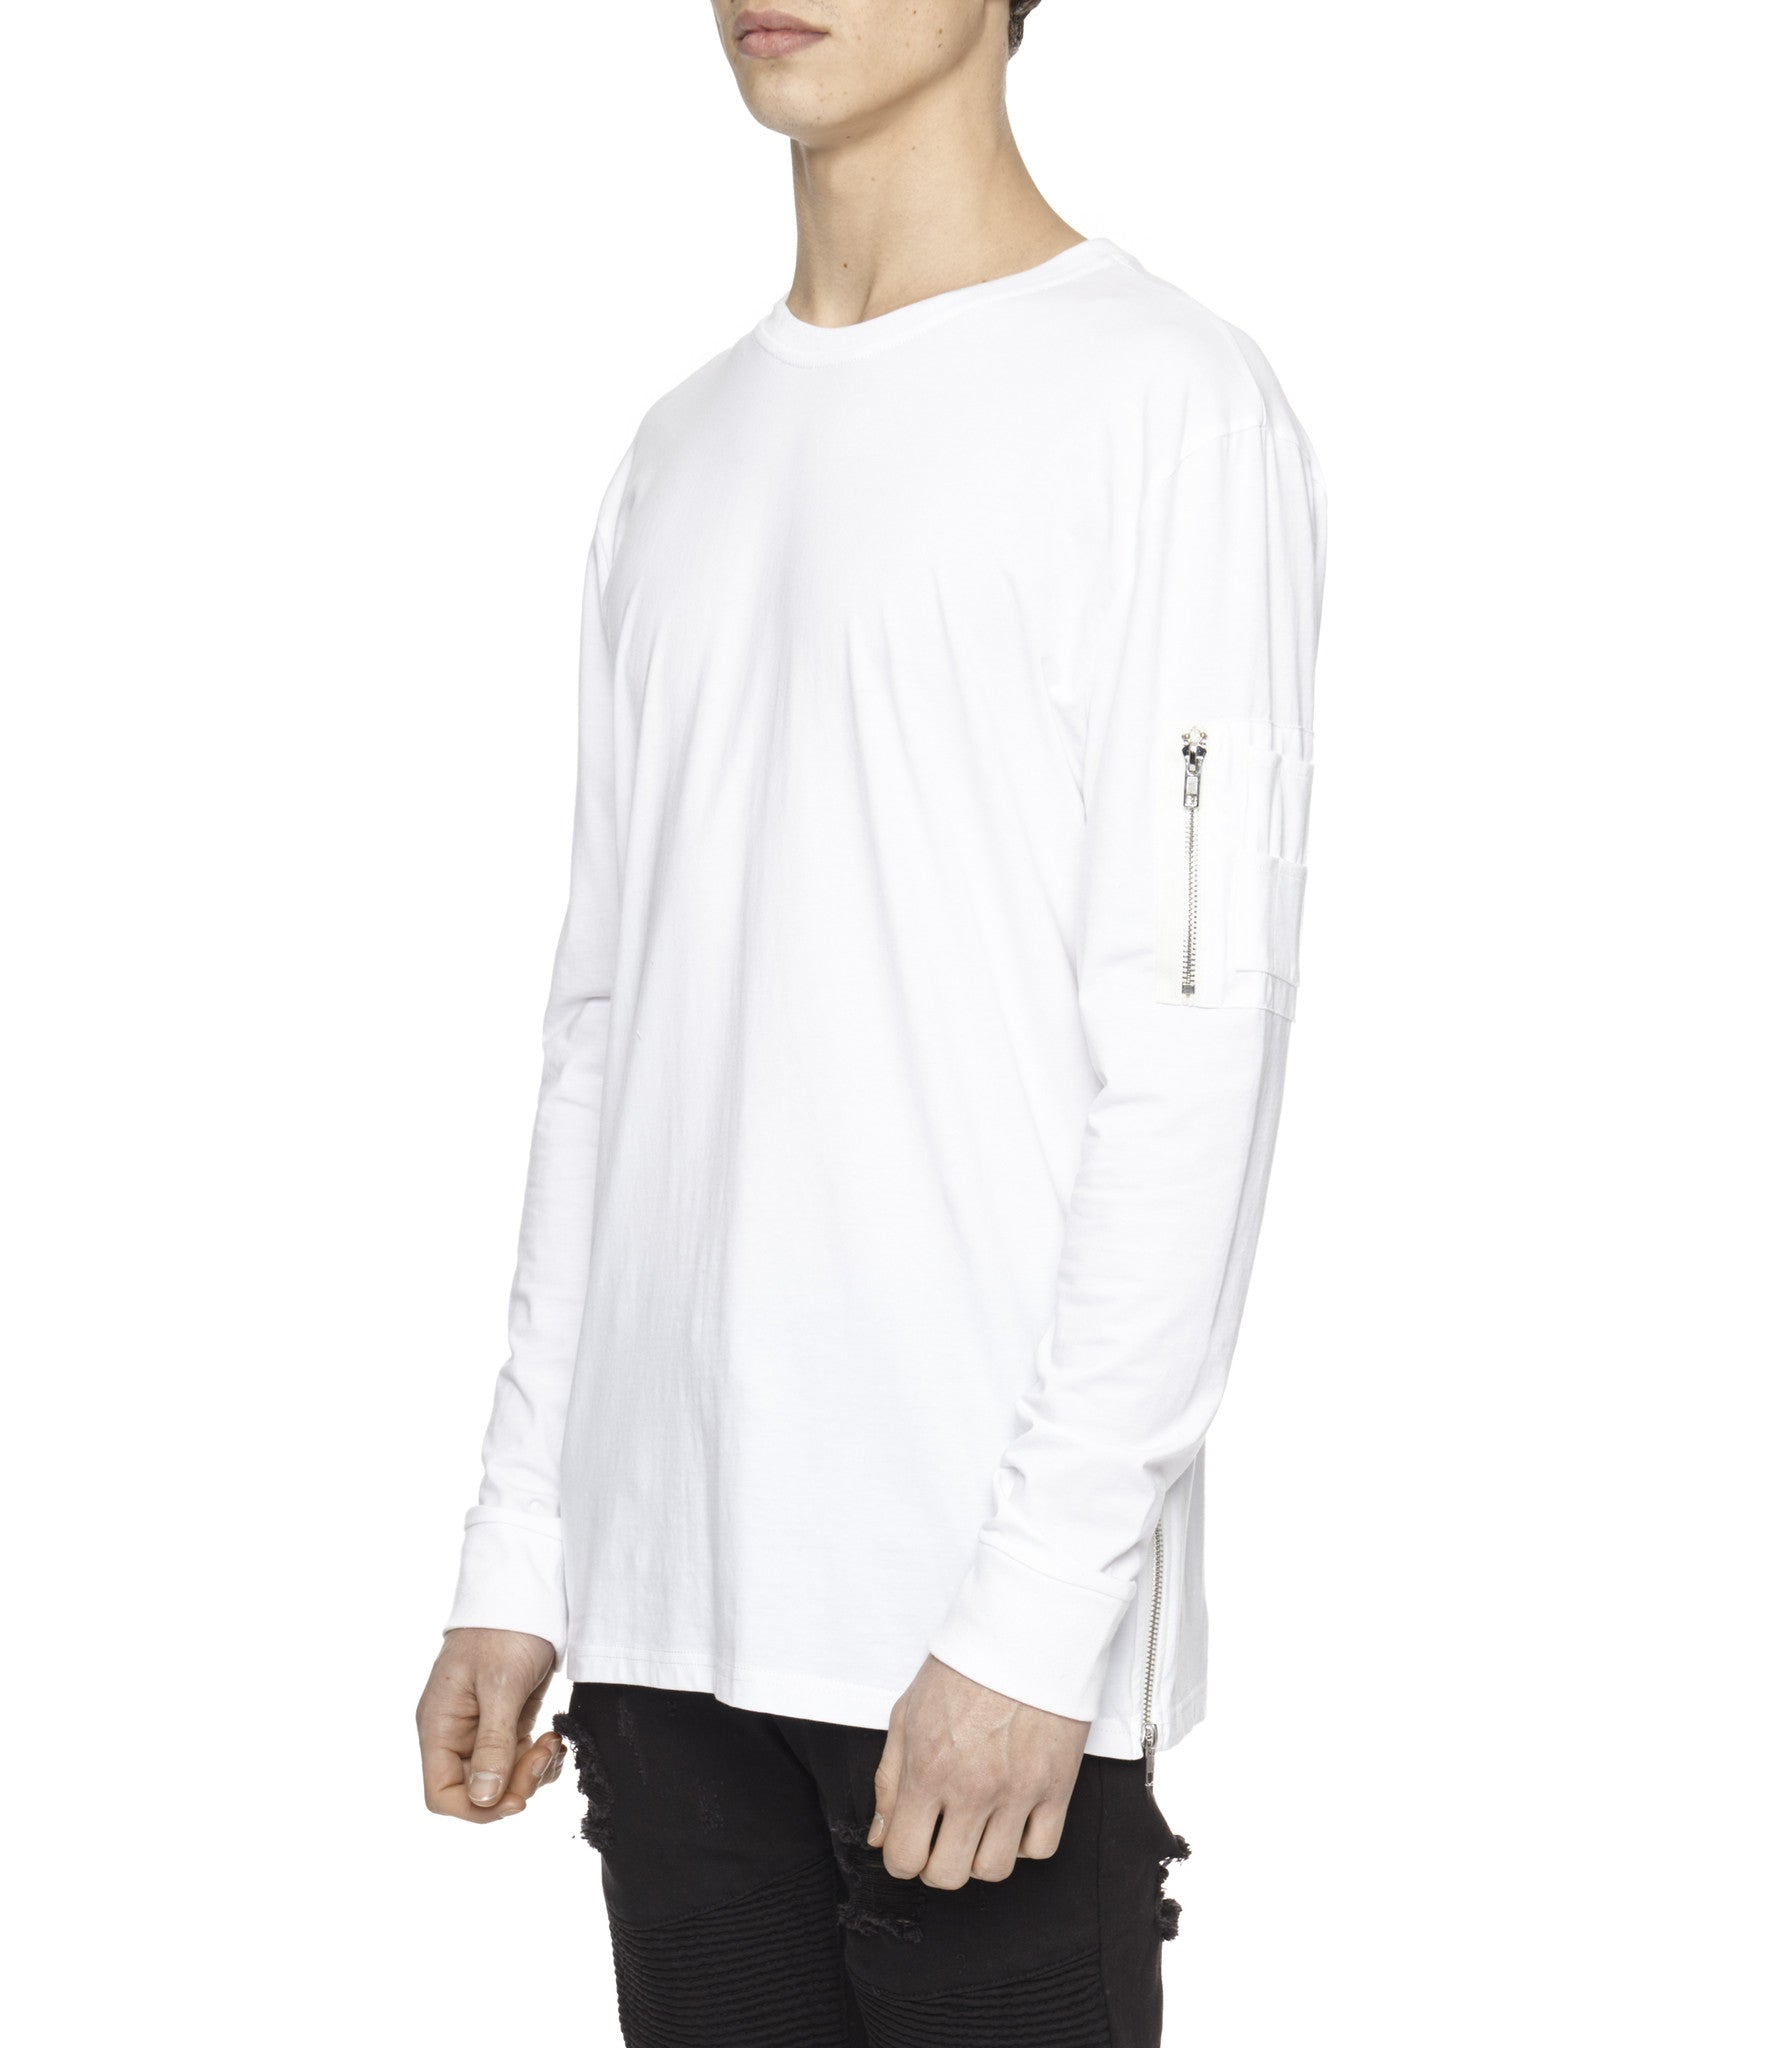 LS303 Utility Long-Sleeve Tee - White - underated london - underatedco - 5